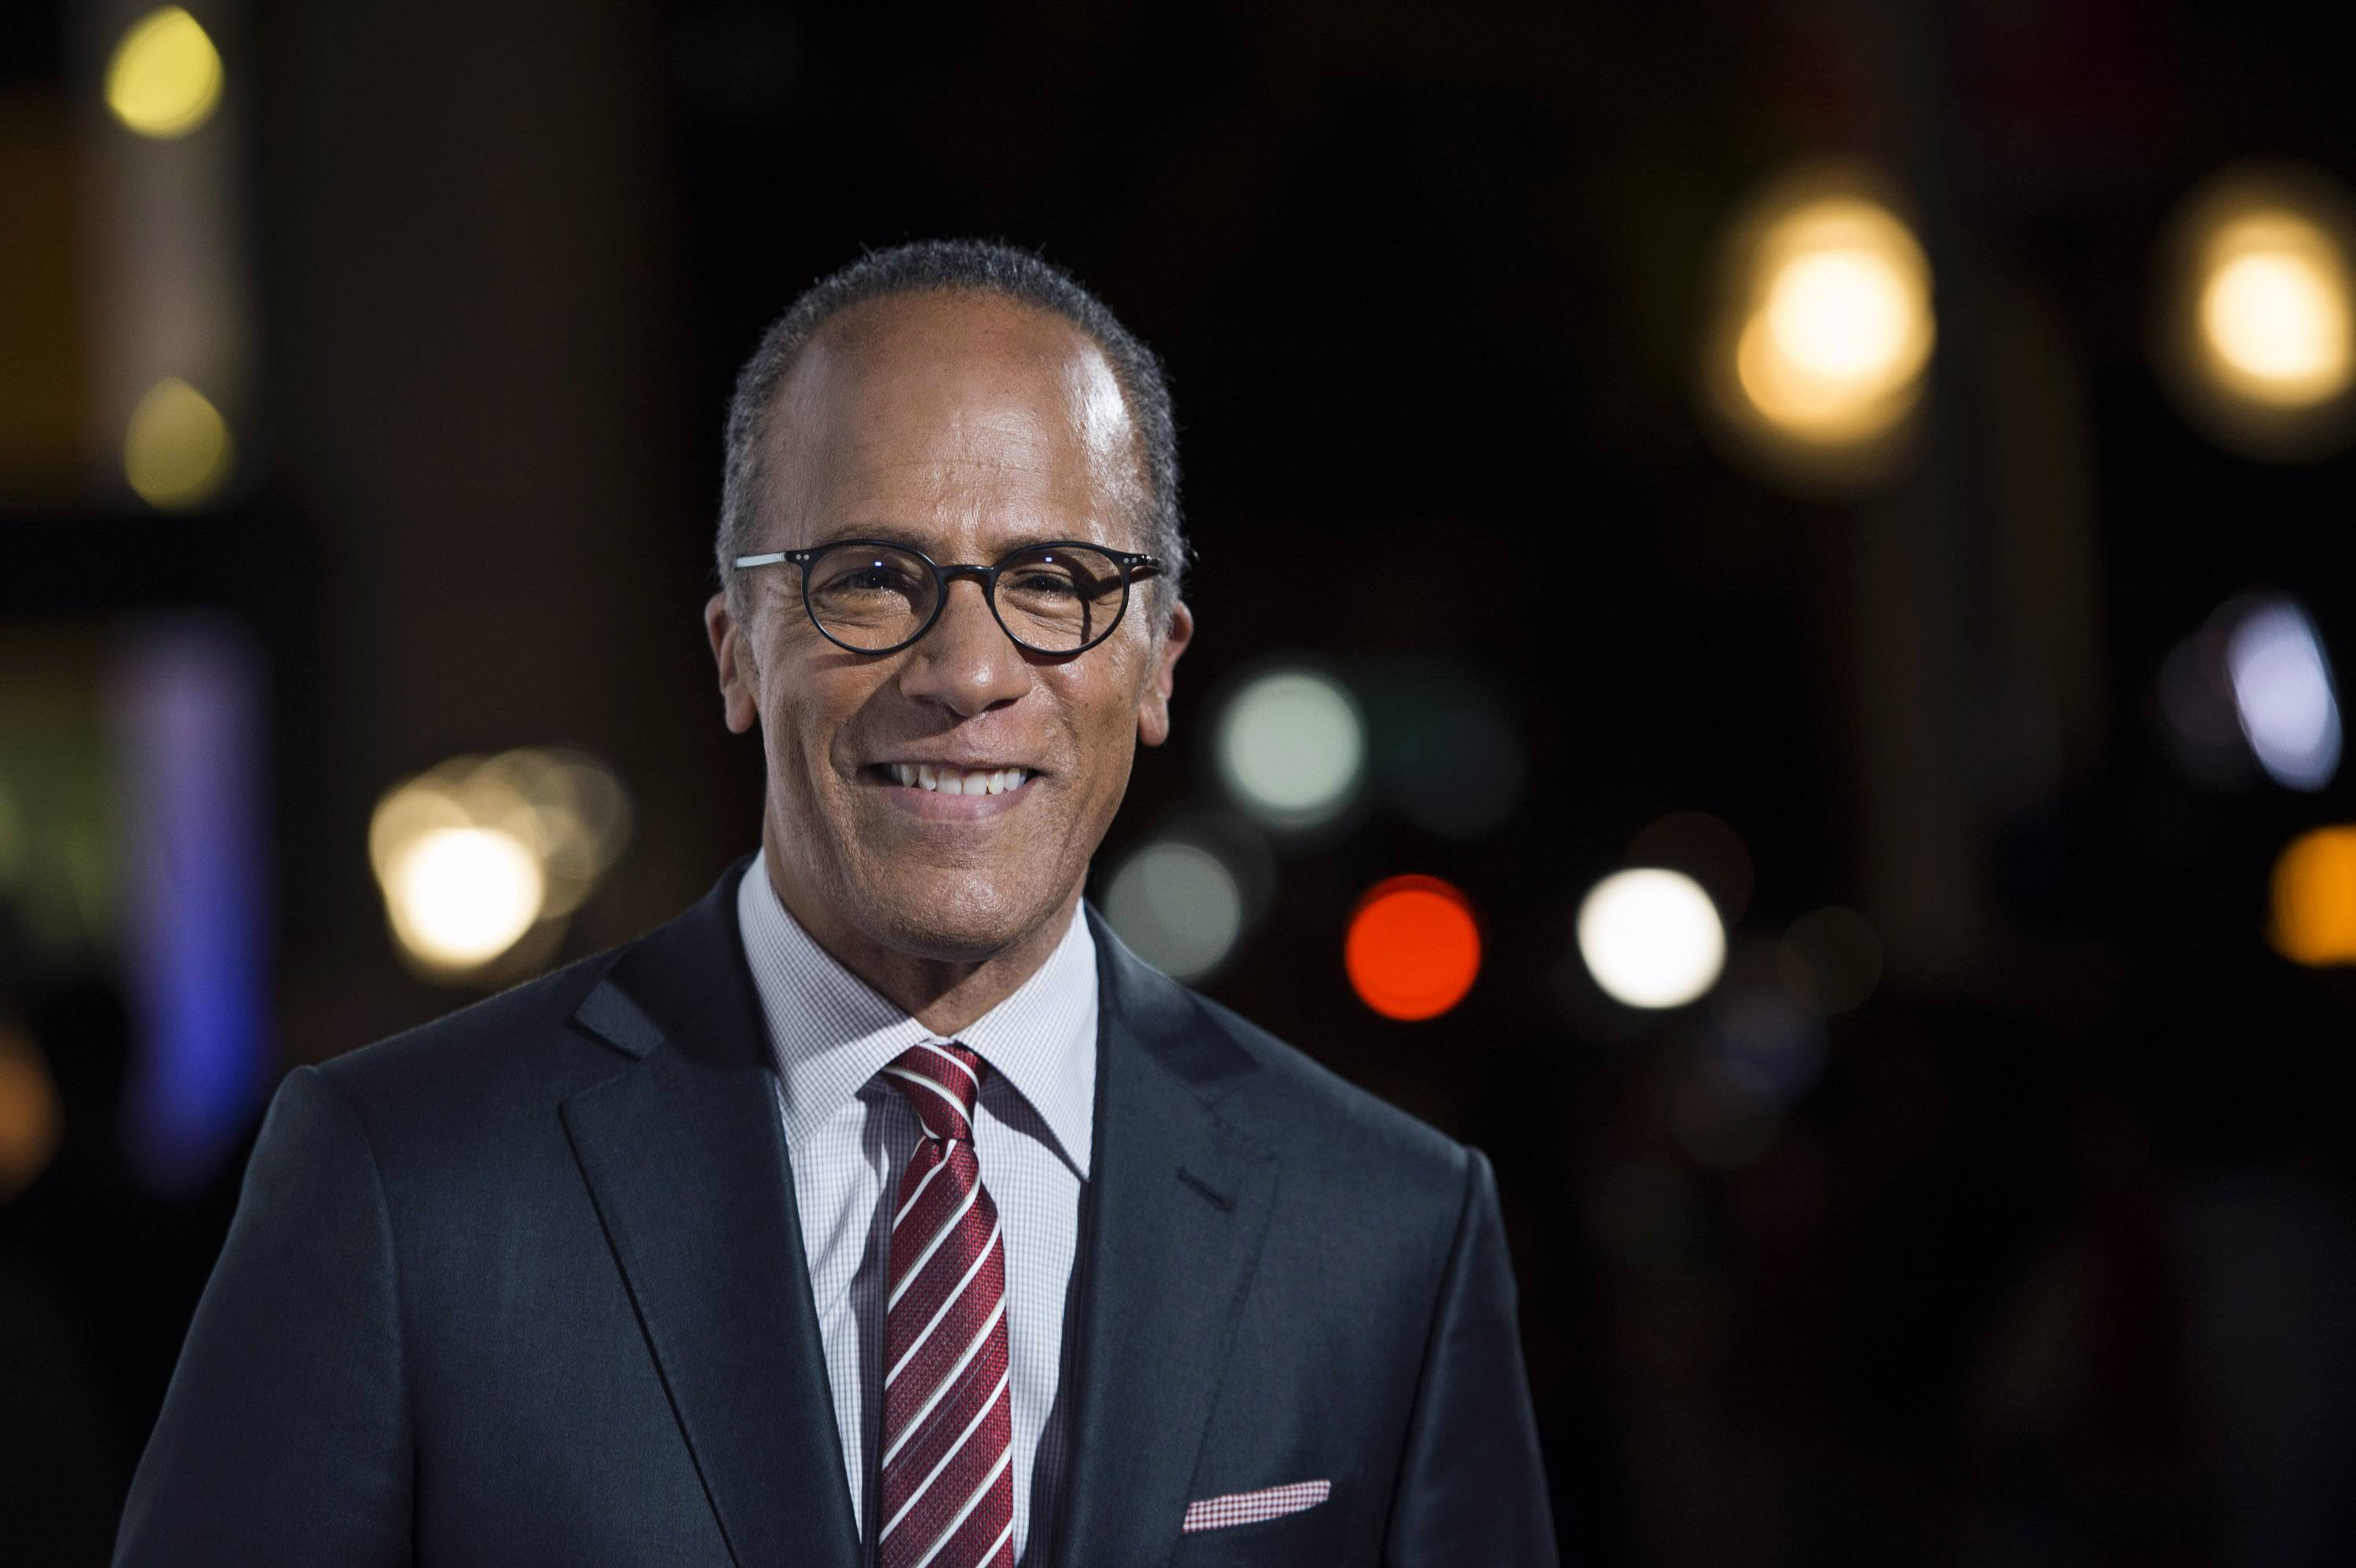 NBC Nightly News anchor Lester Holt a will moderate the first scheduled presidential debate with ABC's Martha Raddatz,